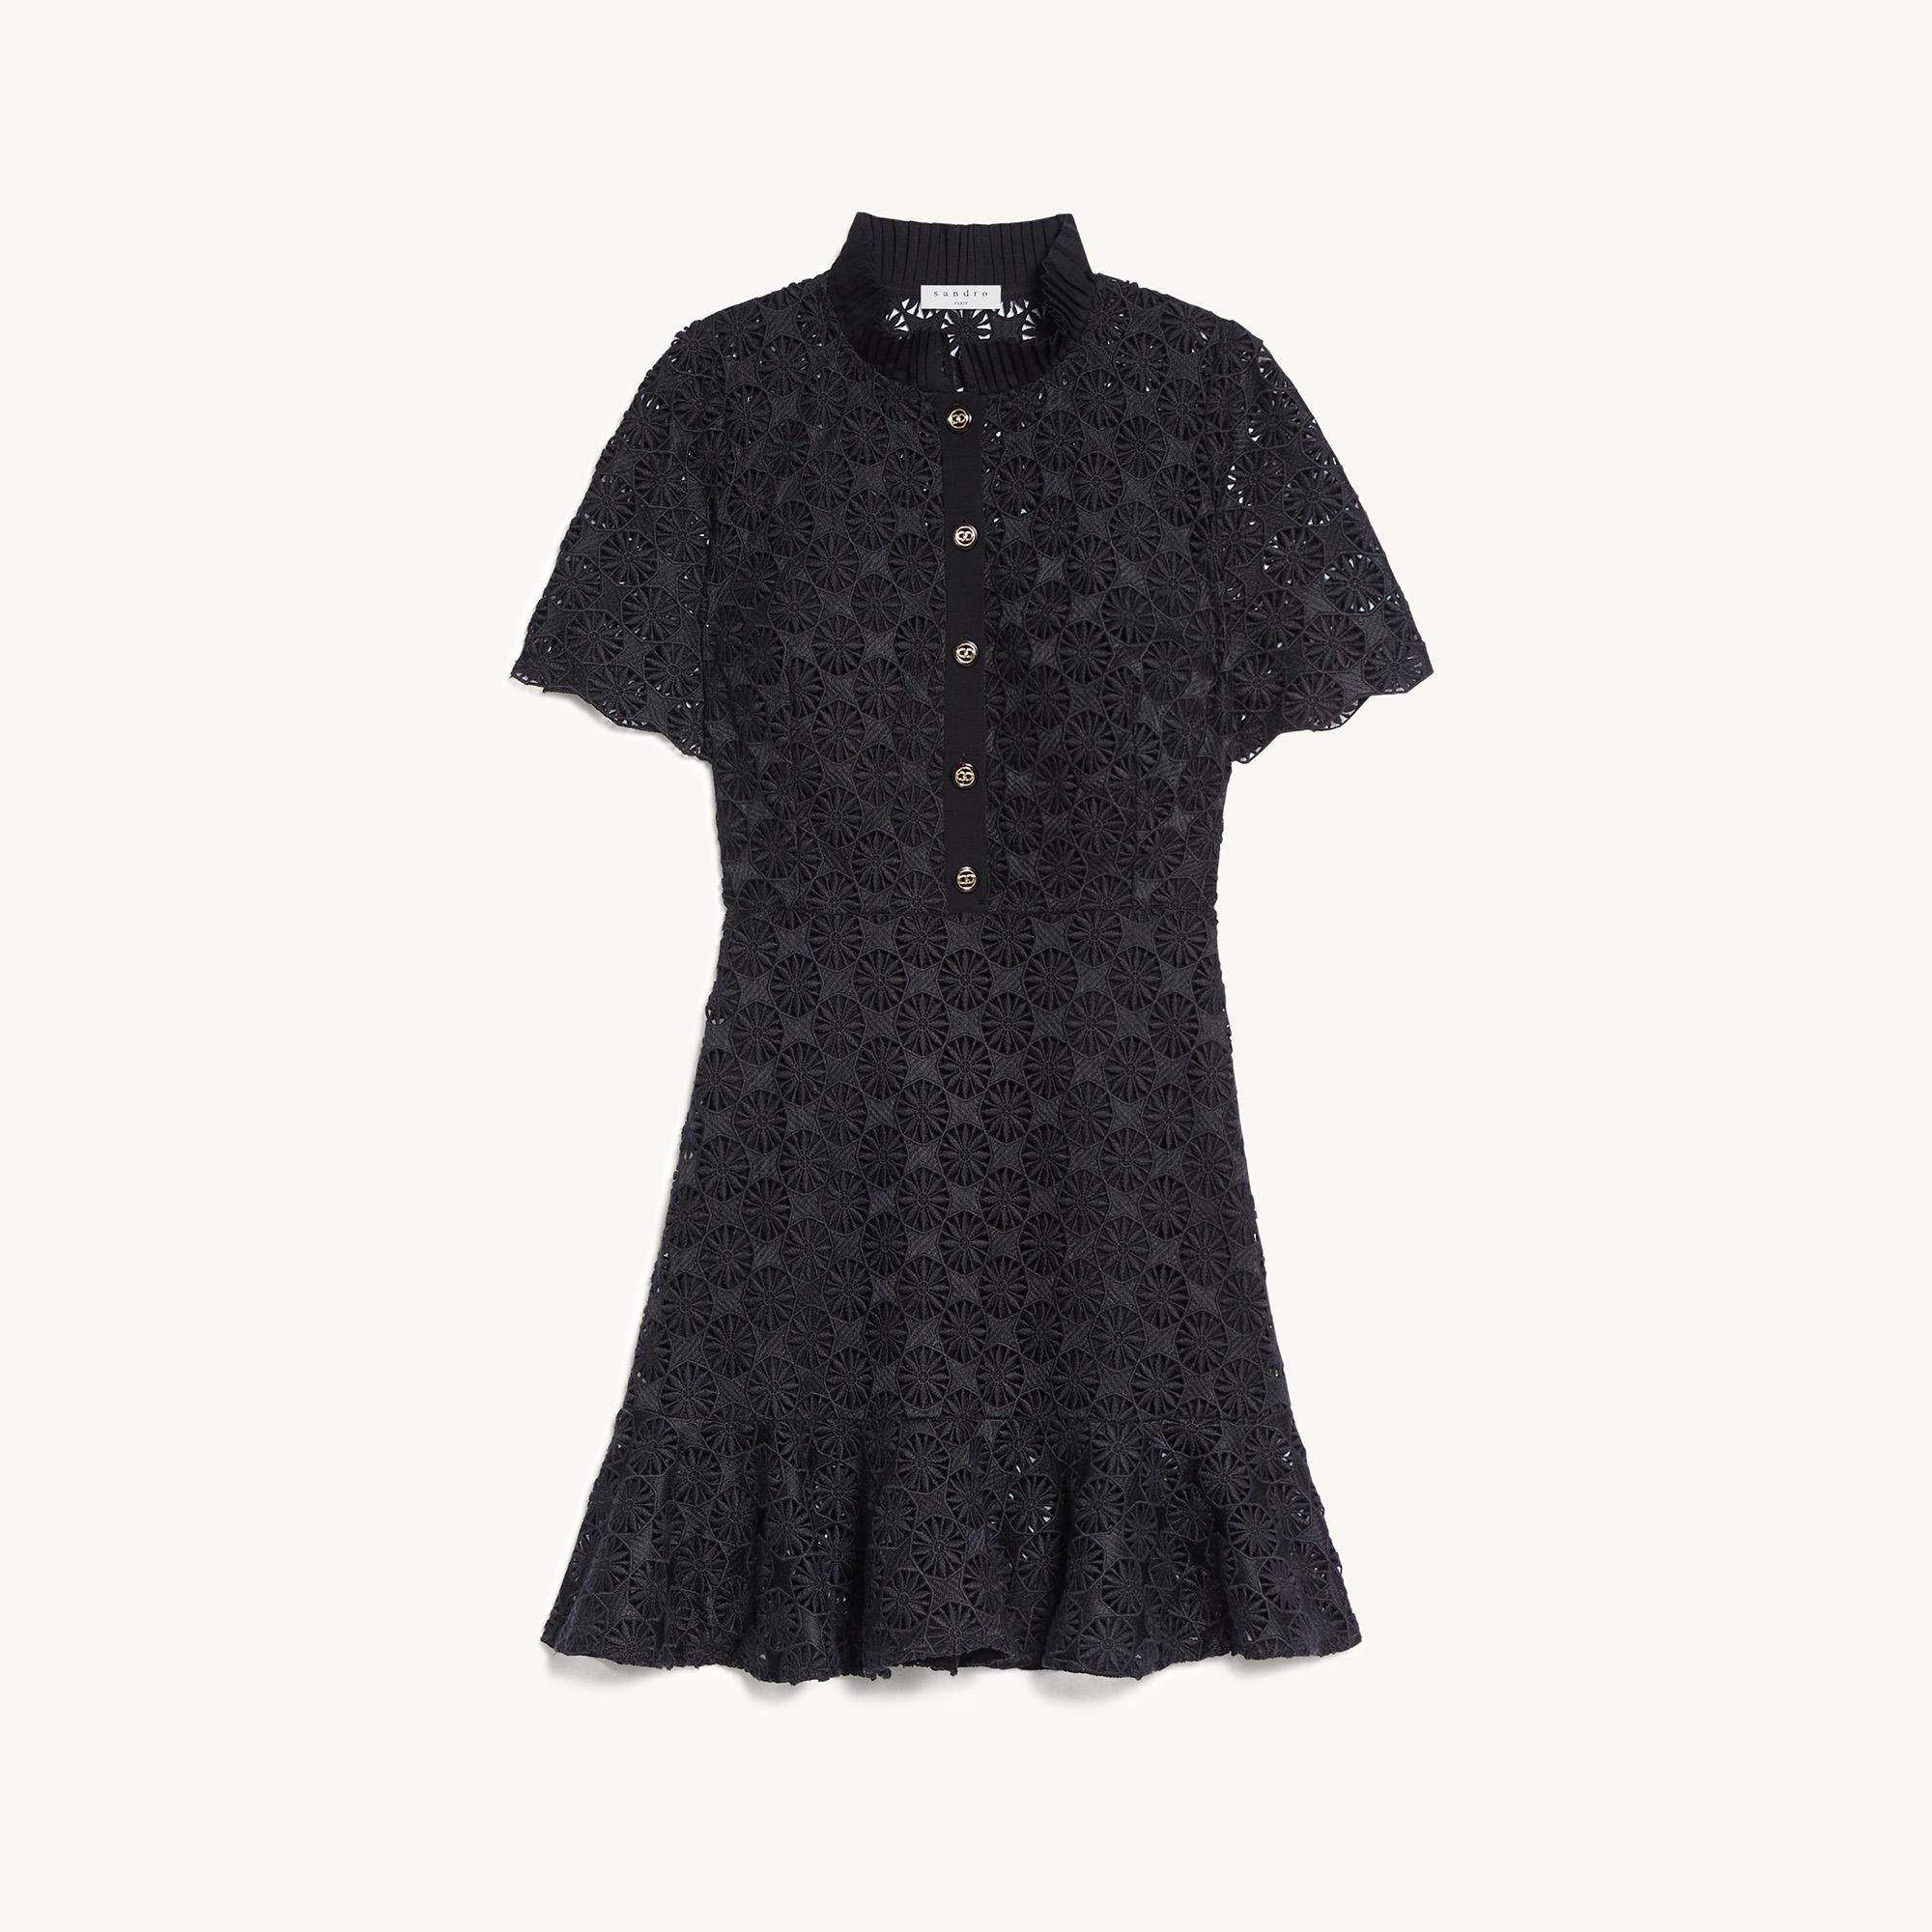 Short-sleeved lace dress